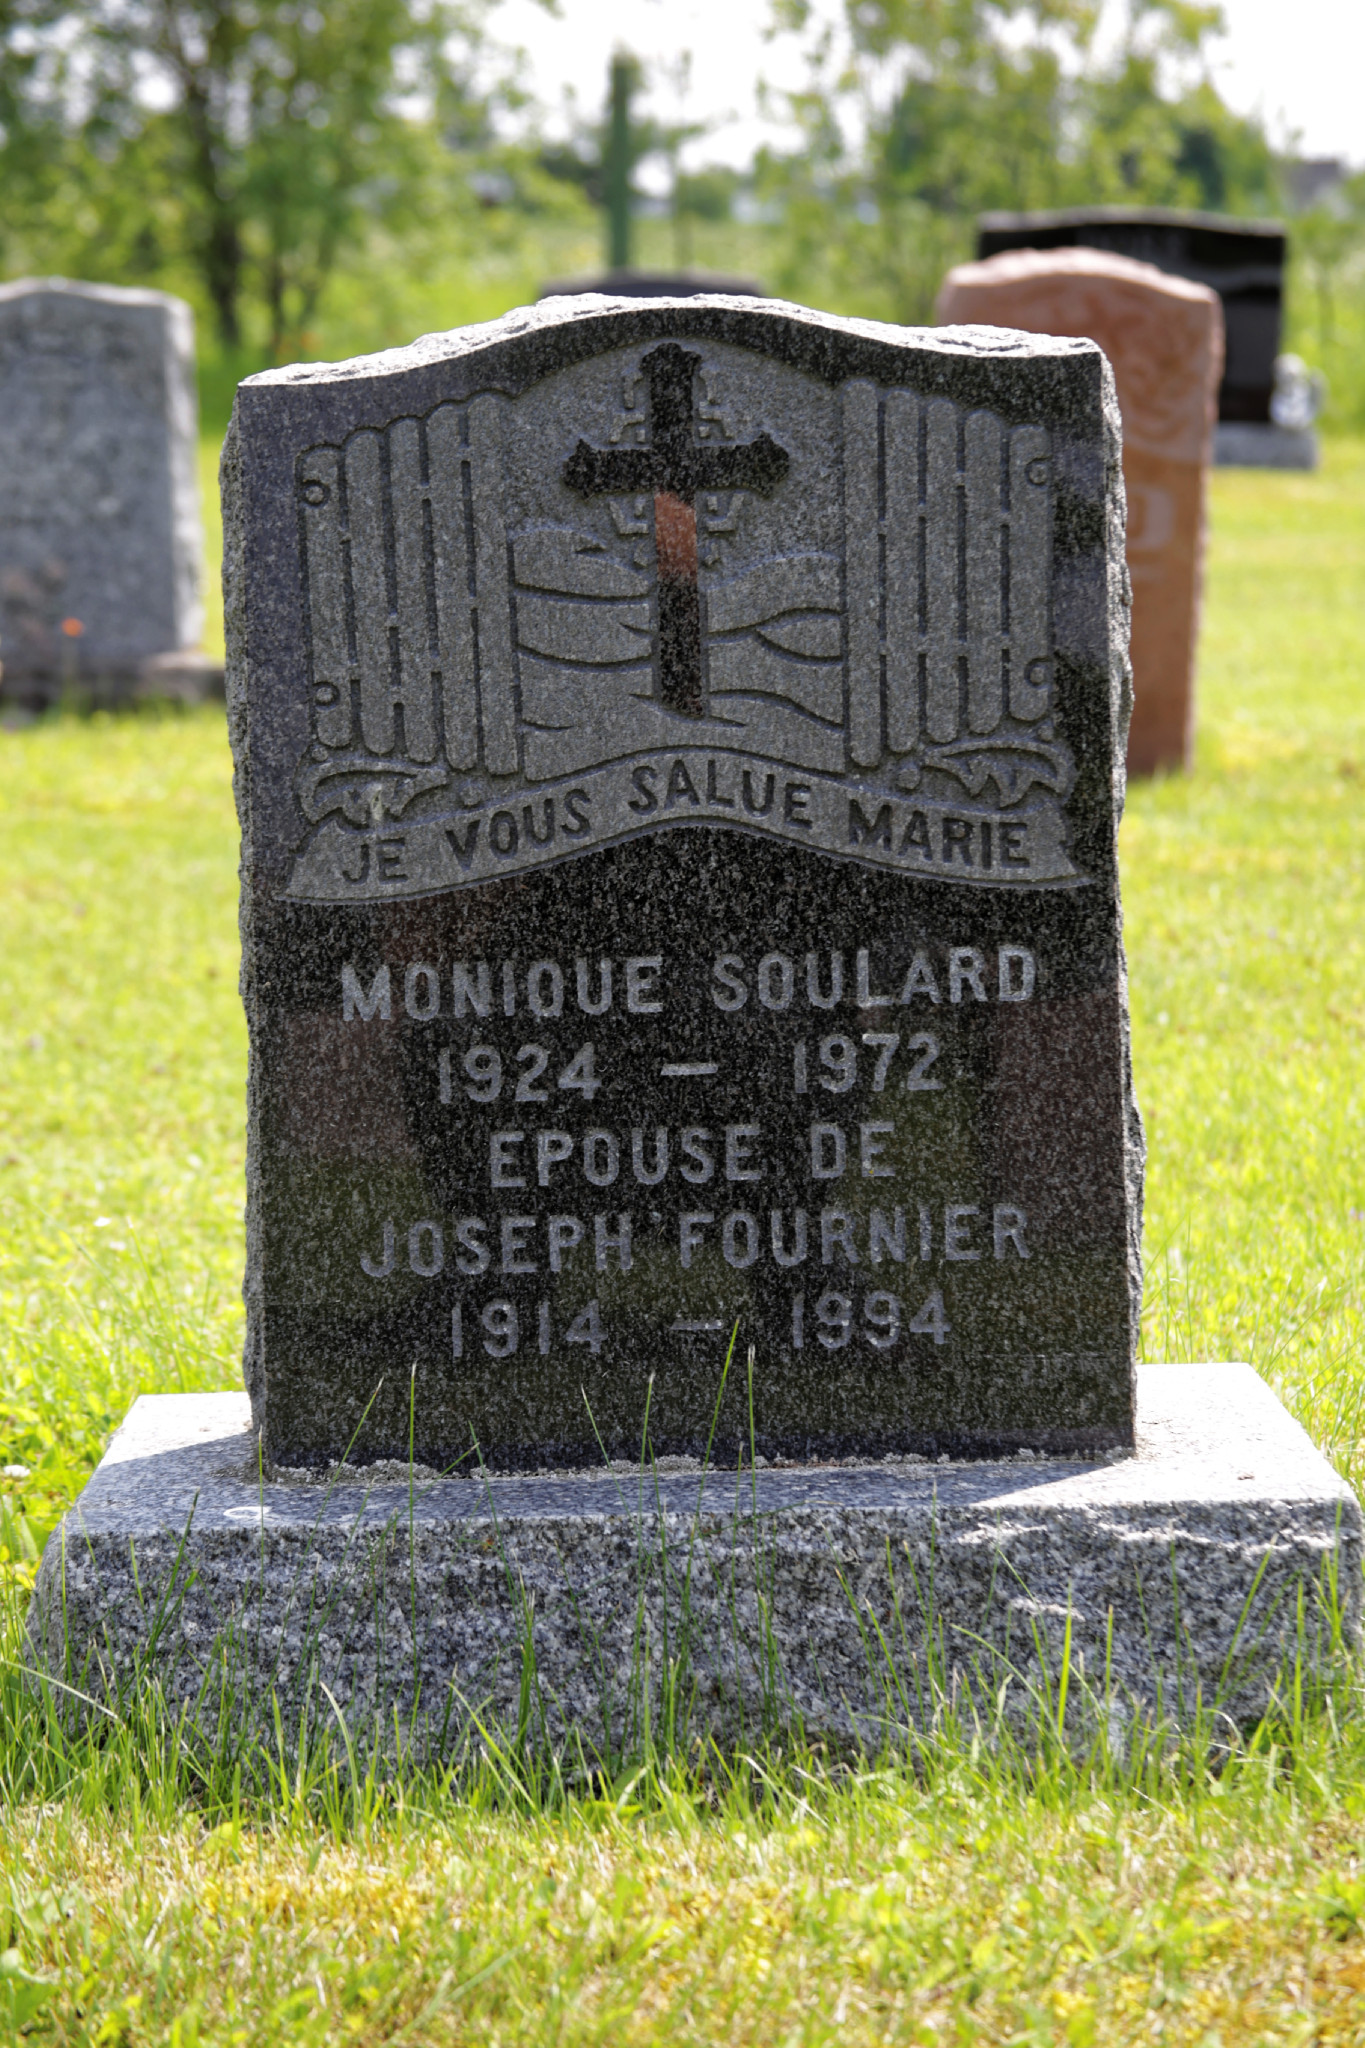 Monique Soulard